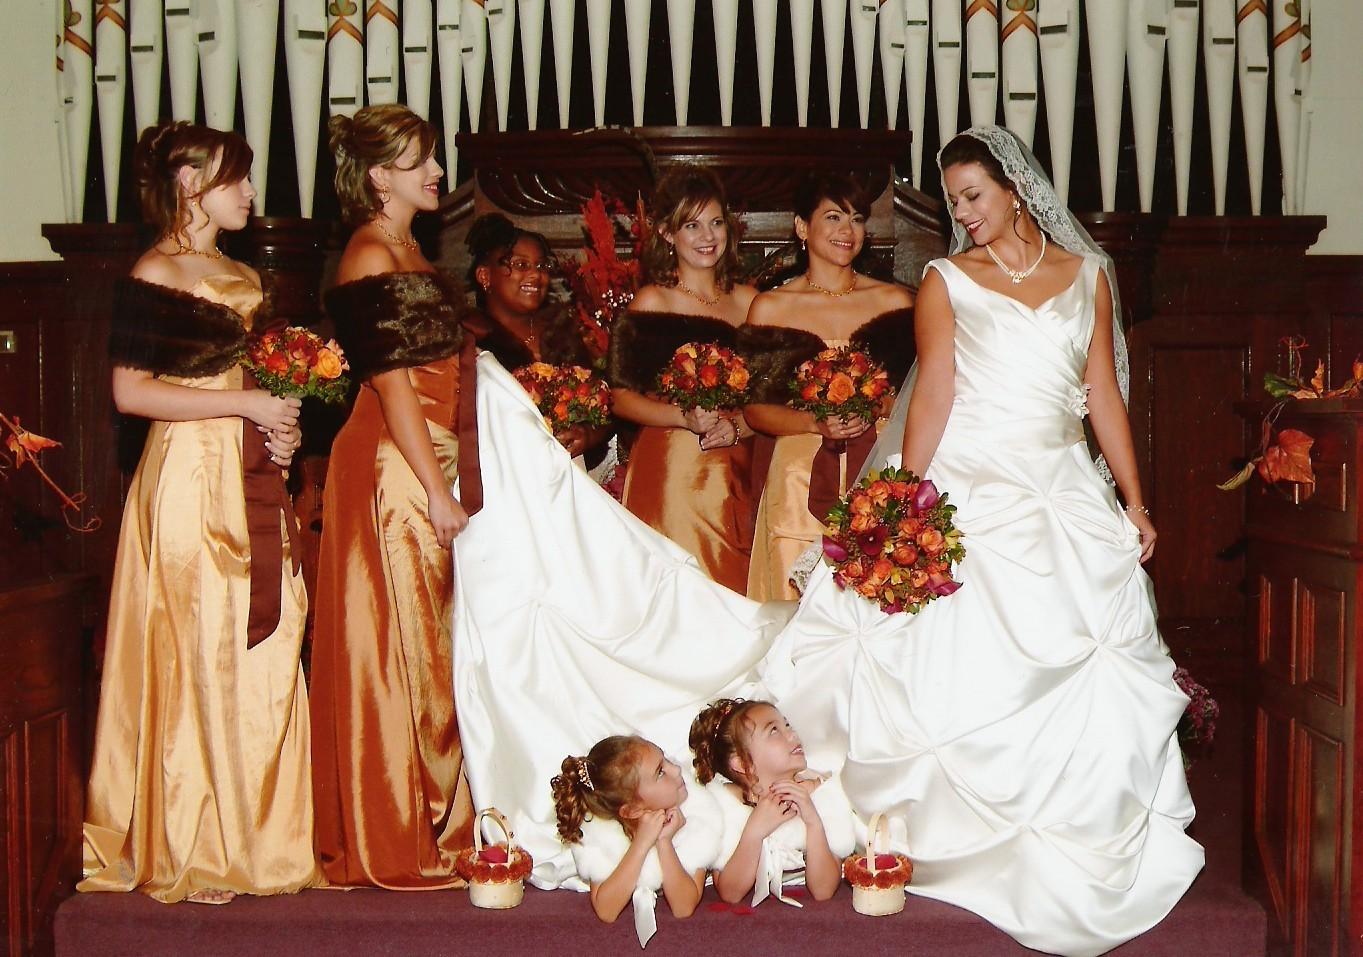 Ceremony, Flowers & Decor, Bridesmaids, Bridesmaids Dresses, Wedding Dresses, Fashion, yellow, orange, brown, gold, dress, Ceremony Flowers, Bridesmaid Bouquets, Flowers, Maximum capacity events, Flower Wedding Dresses